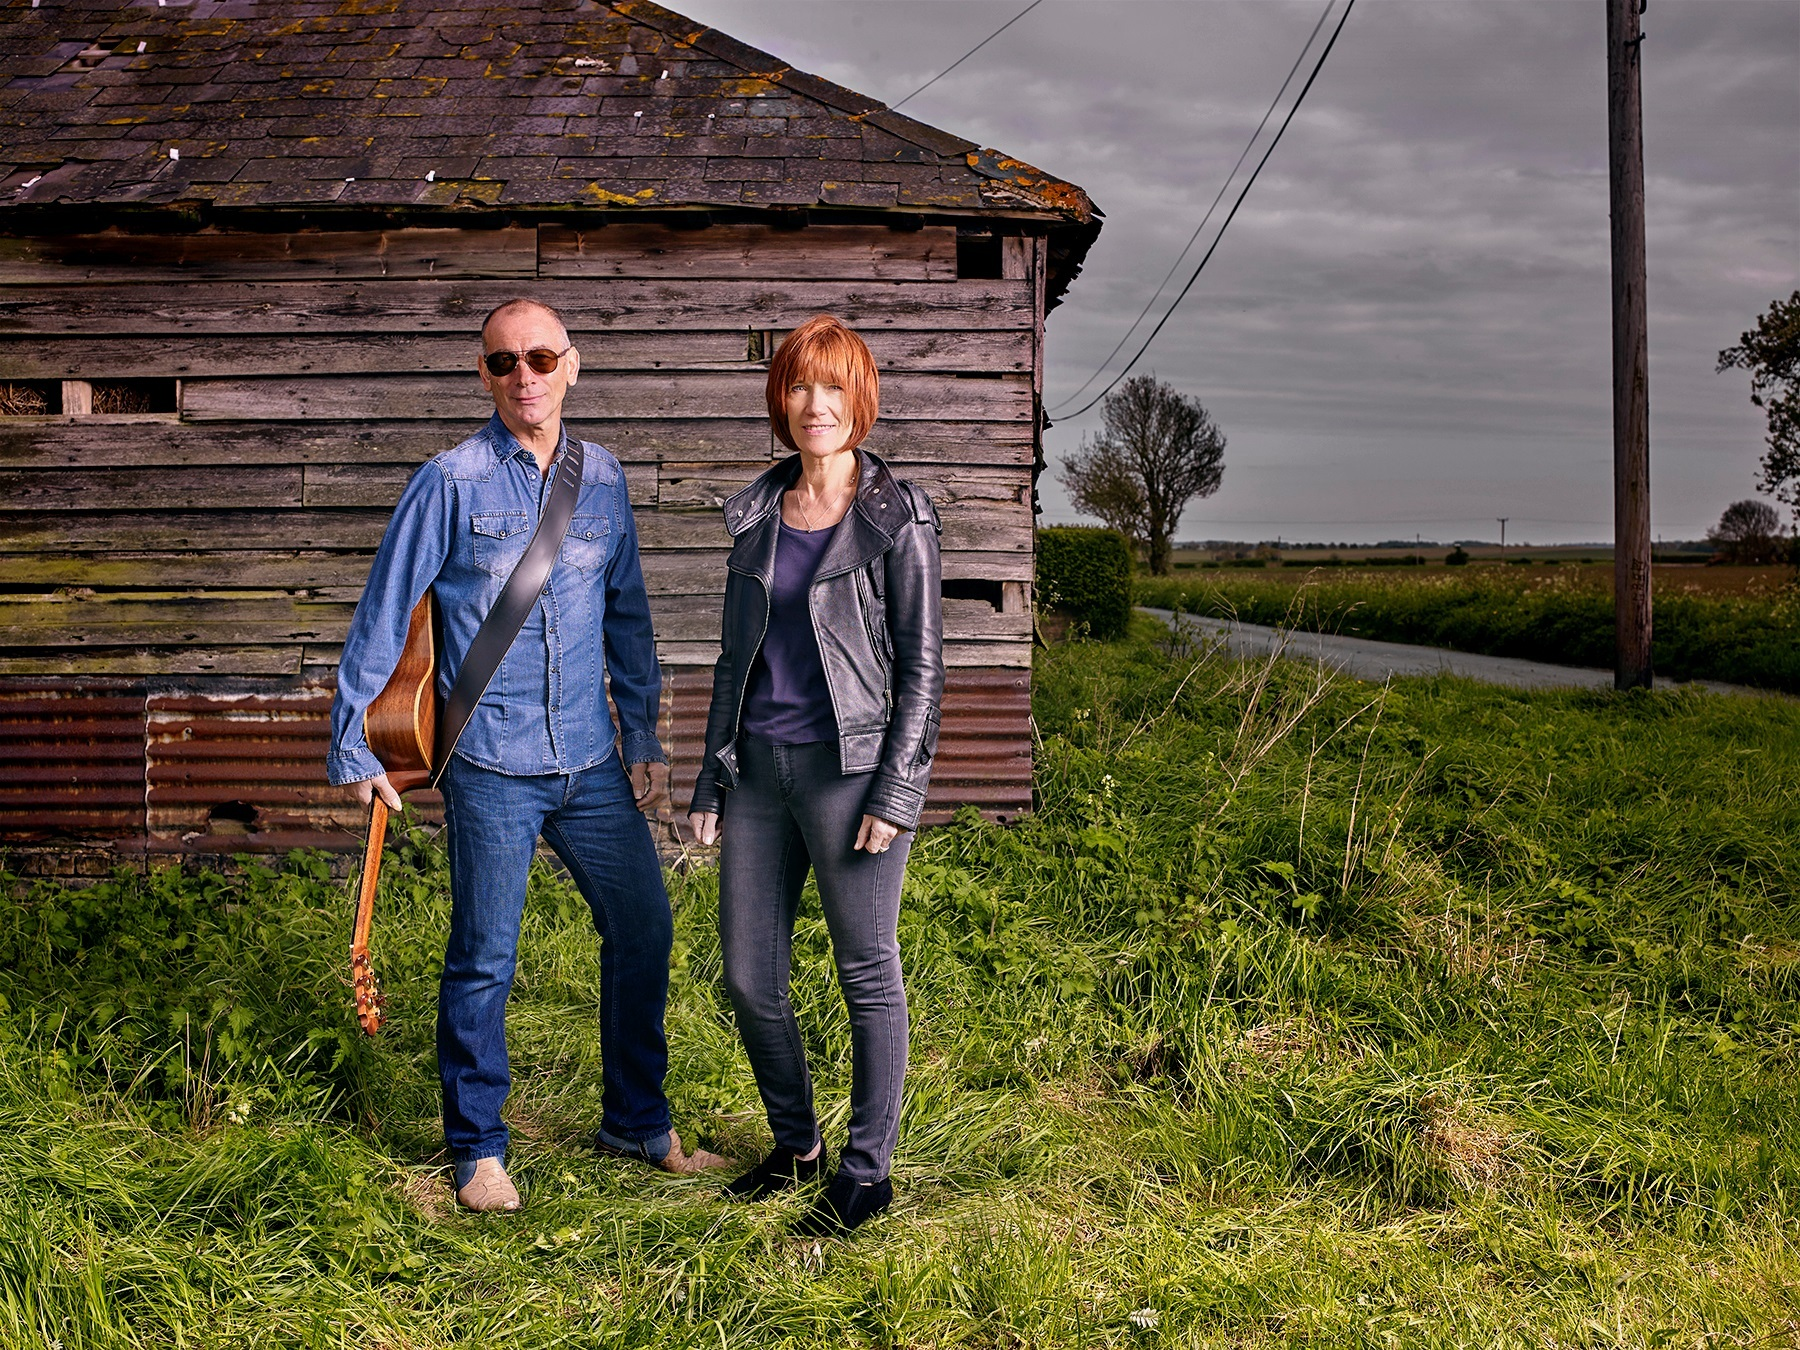 Carmelo Luggeri and Kiki Dee coming to perform at Trowbridge Festival.